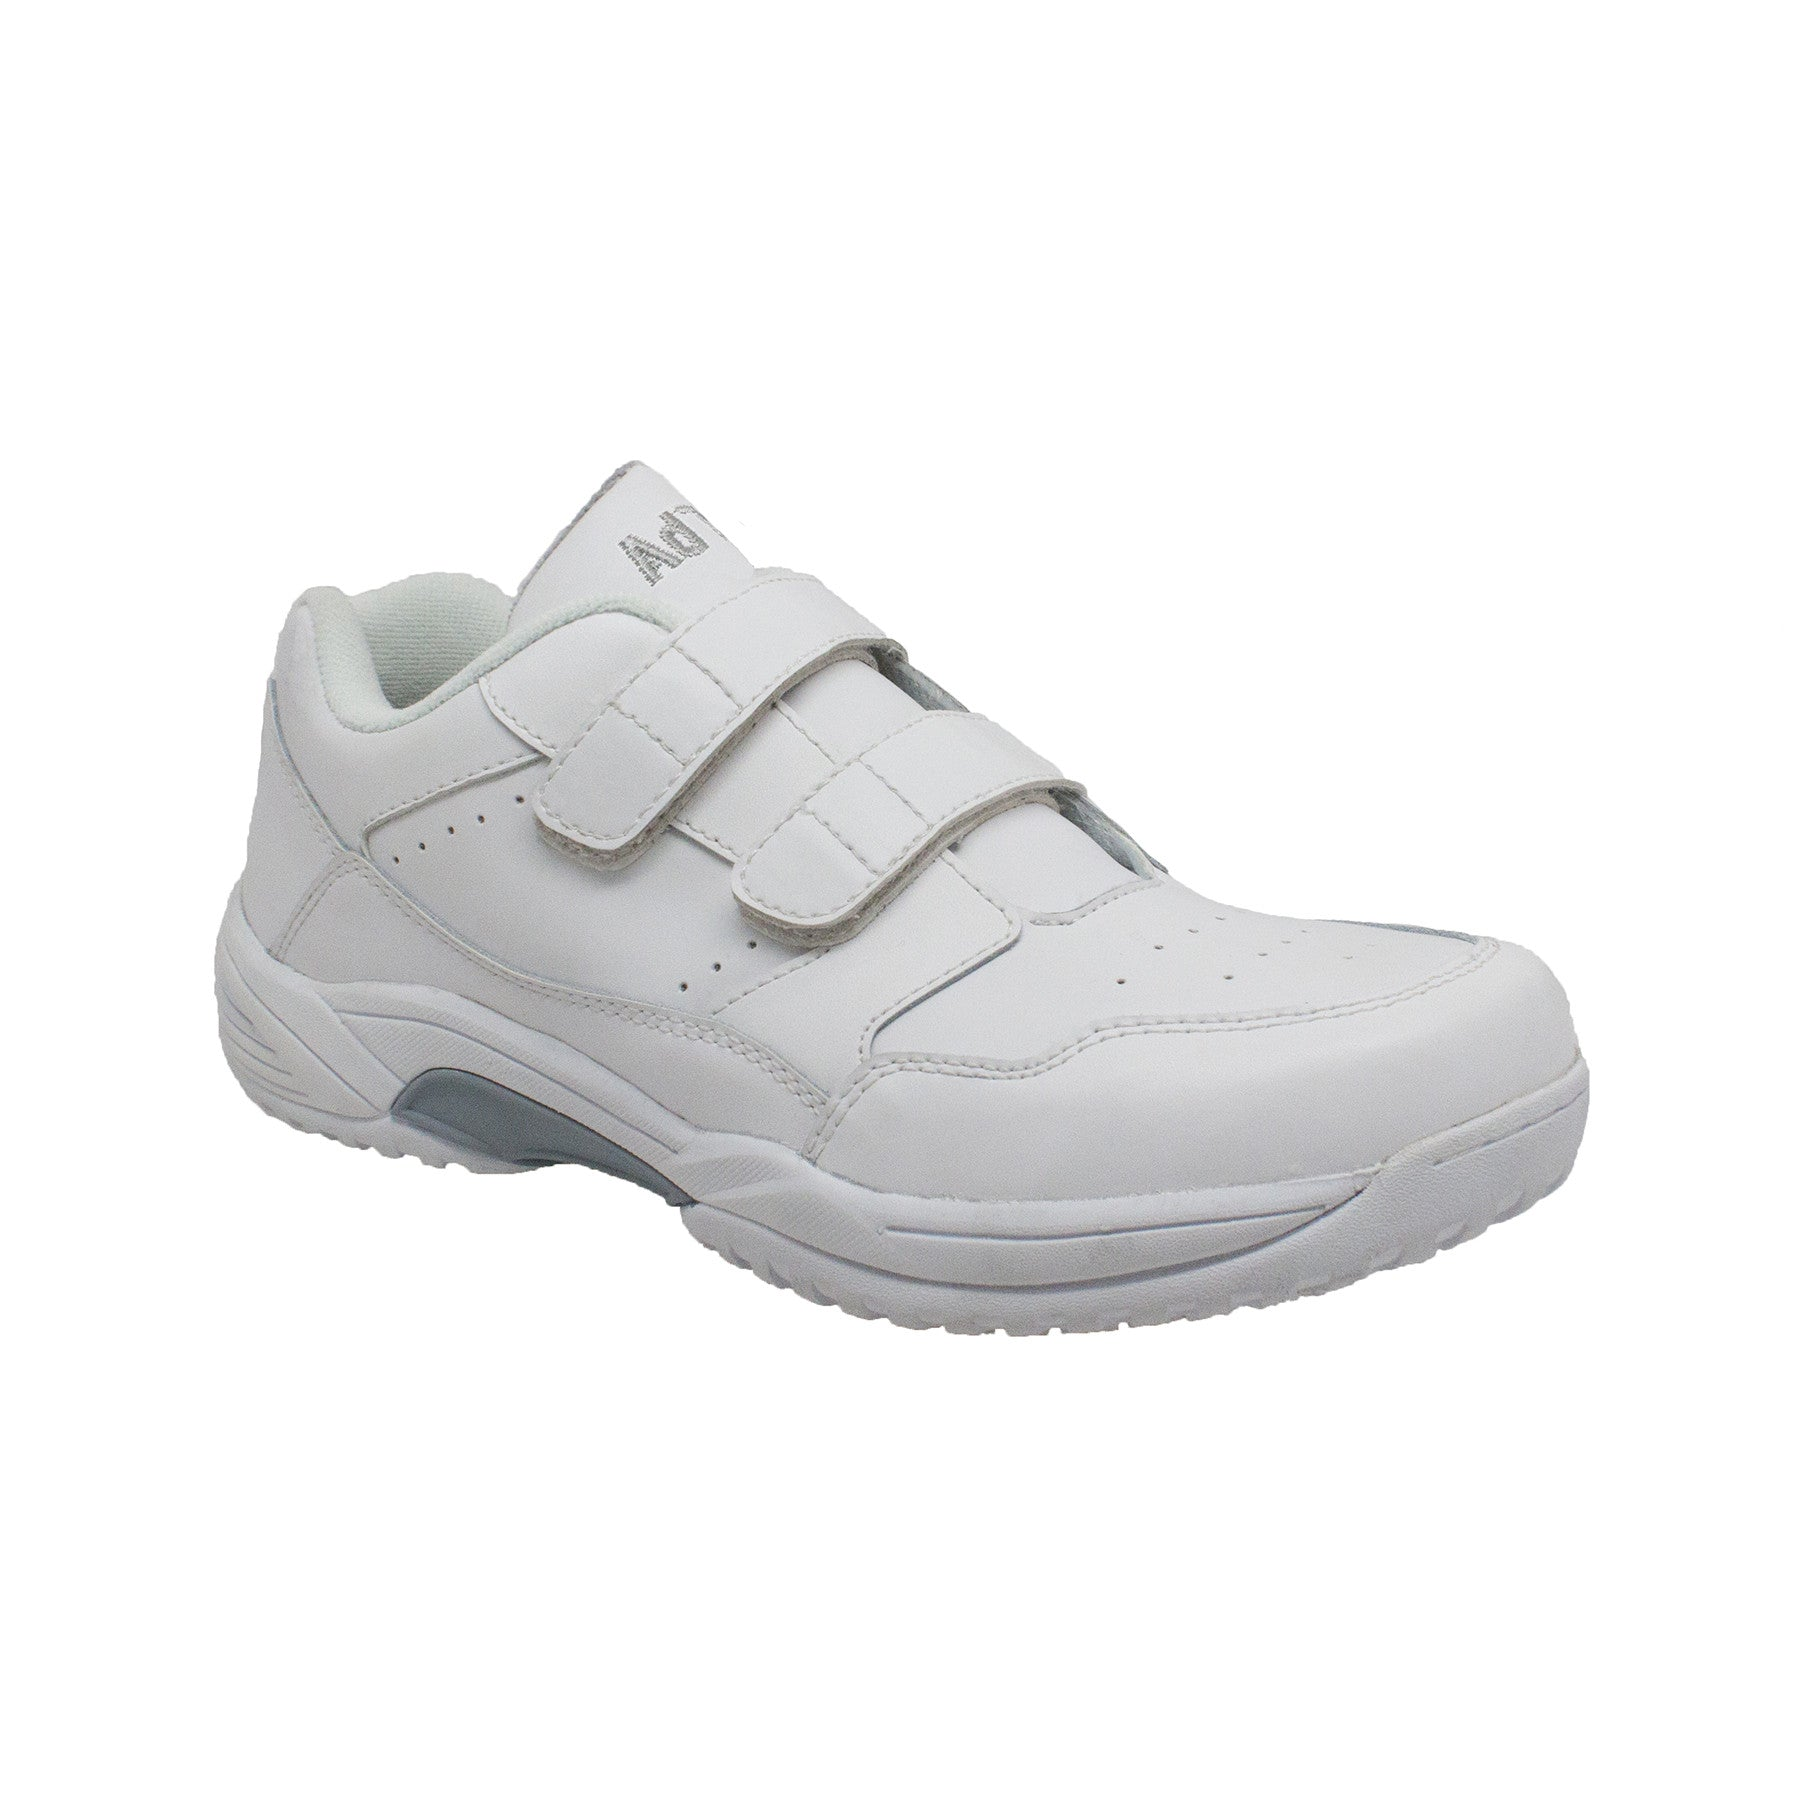 Men's Uniform Athletic Velcro White - 9633 - Shop Genuine Leather men & women's boots online | AdTecFootWear